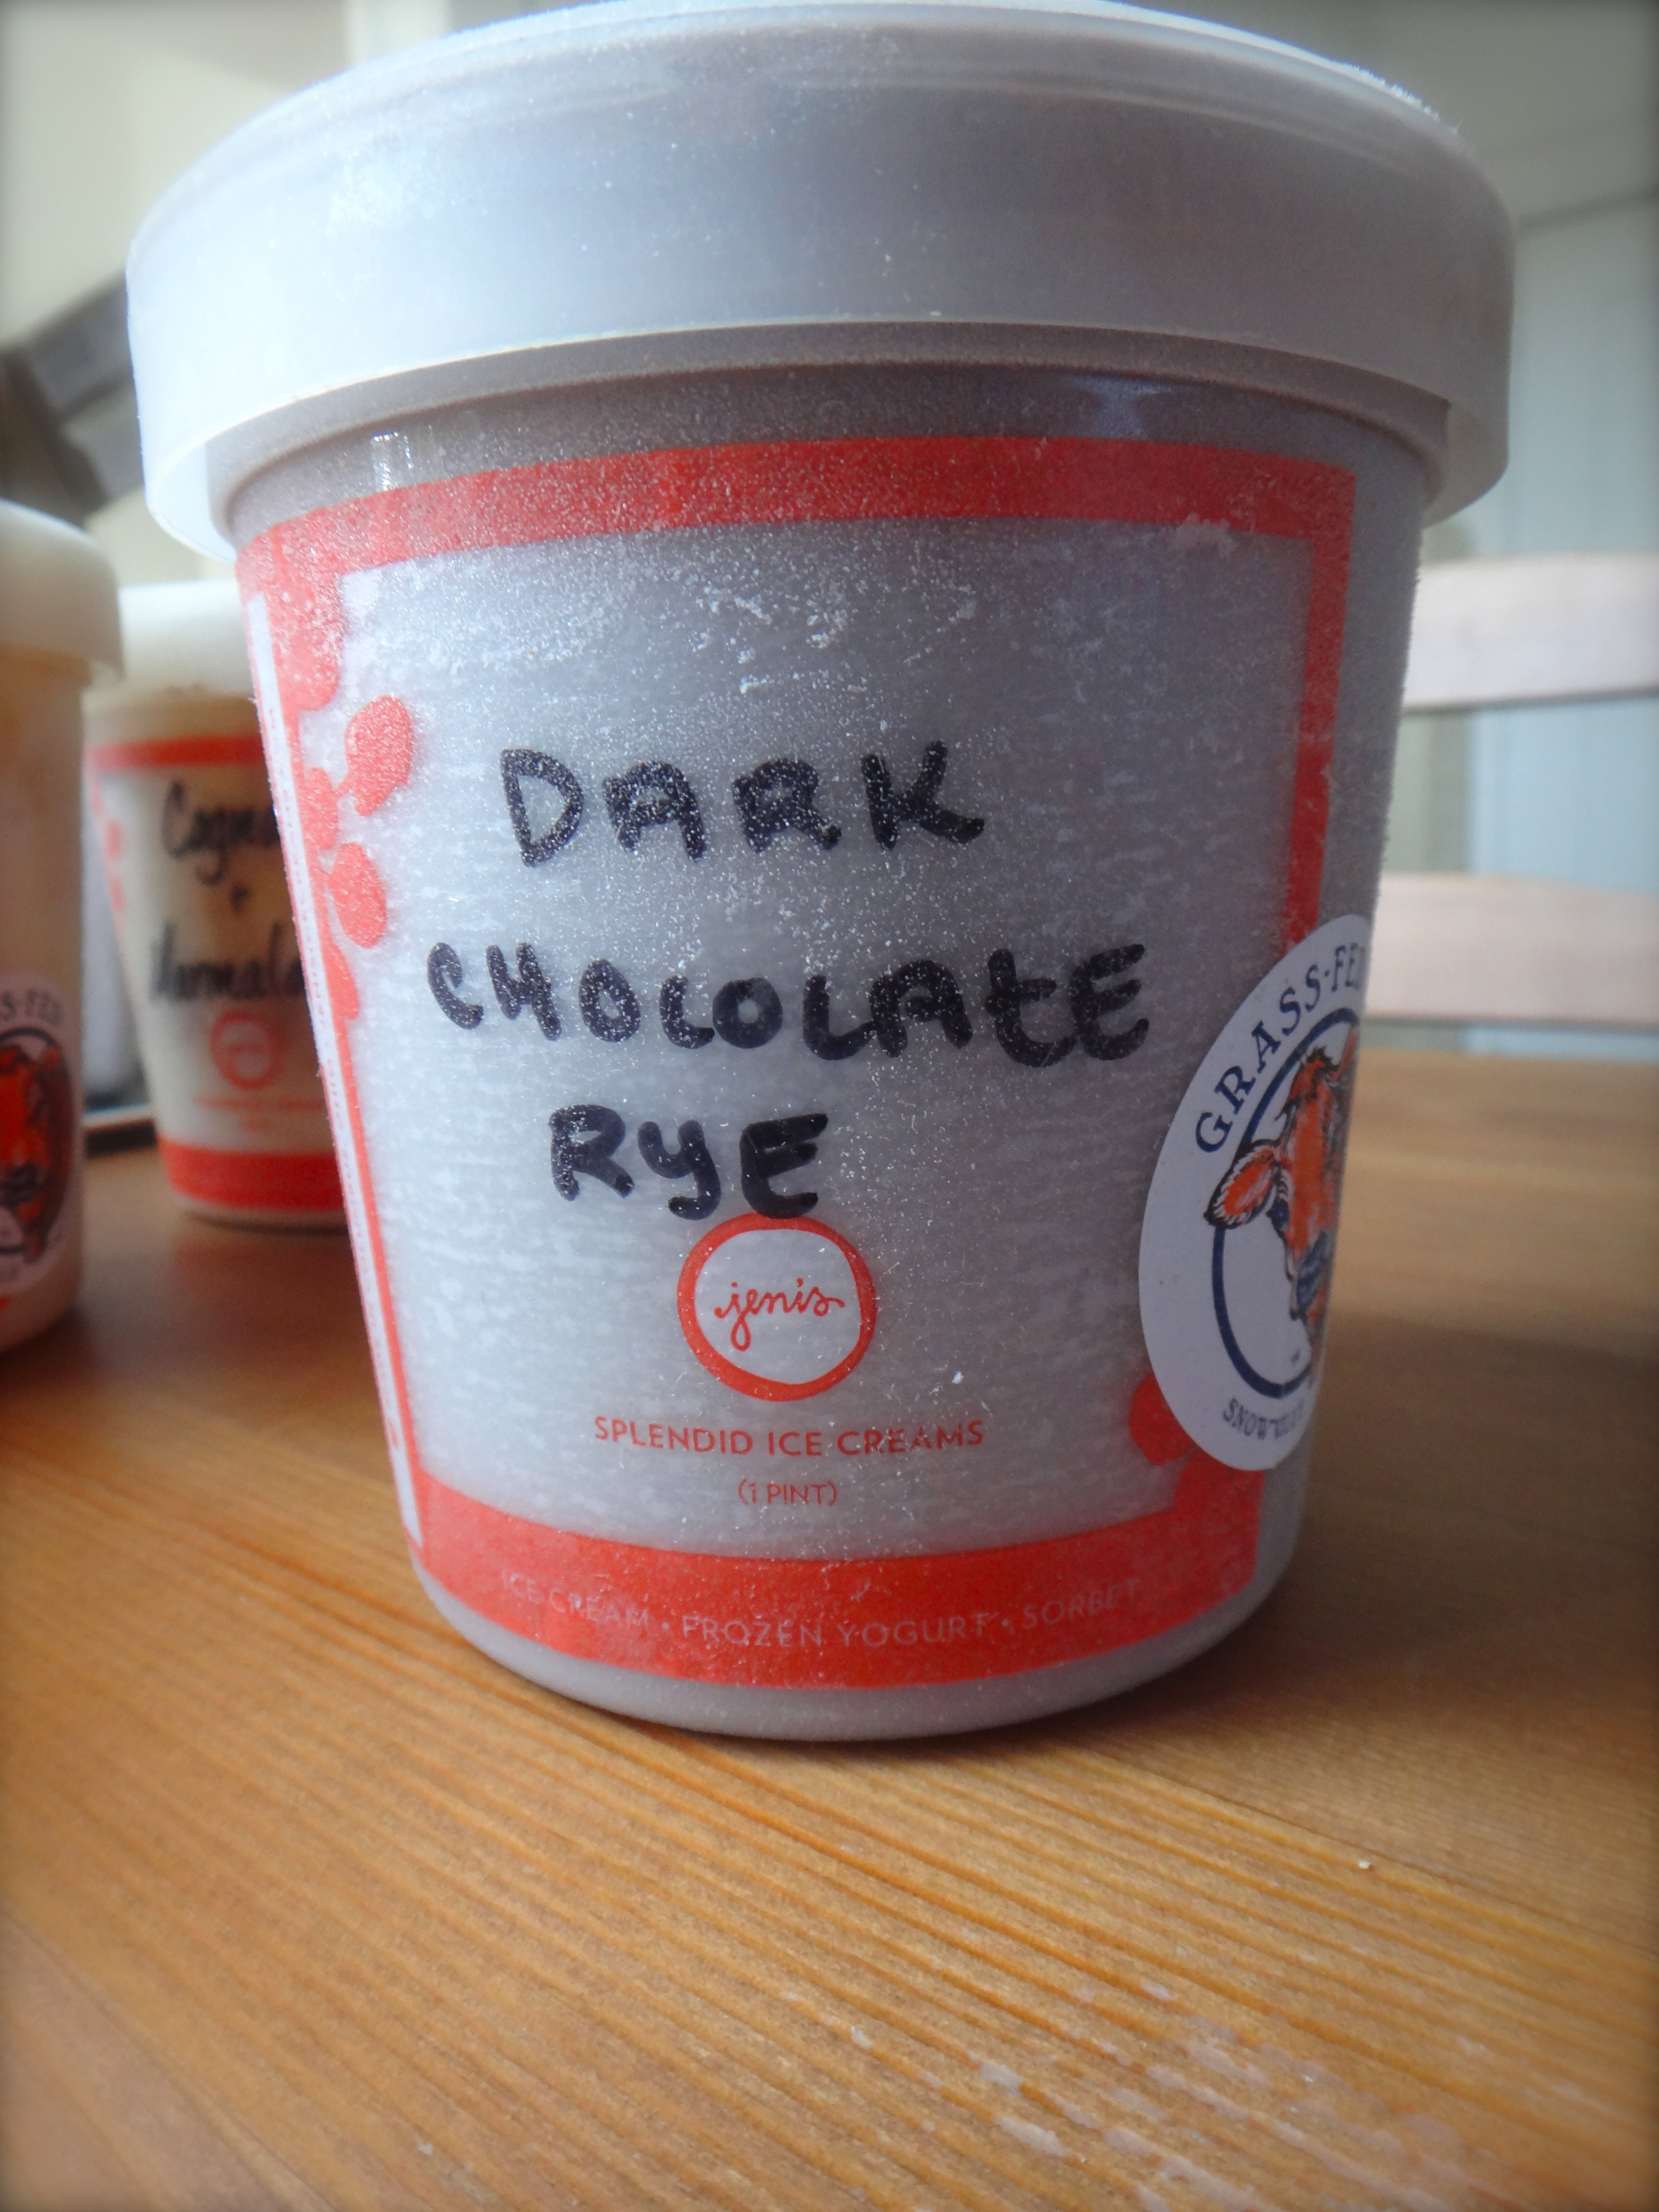 Zelda Collection: Jeni's Dark Chocolate Rye